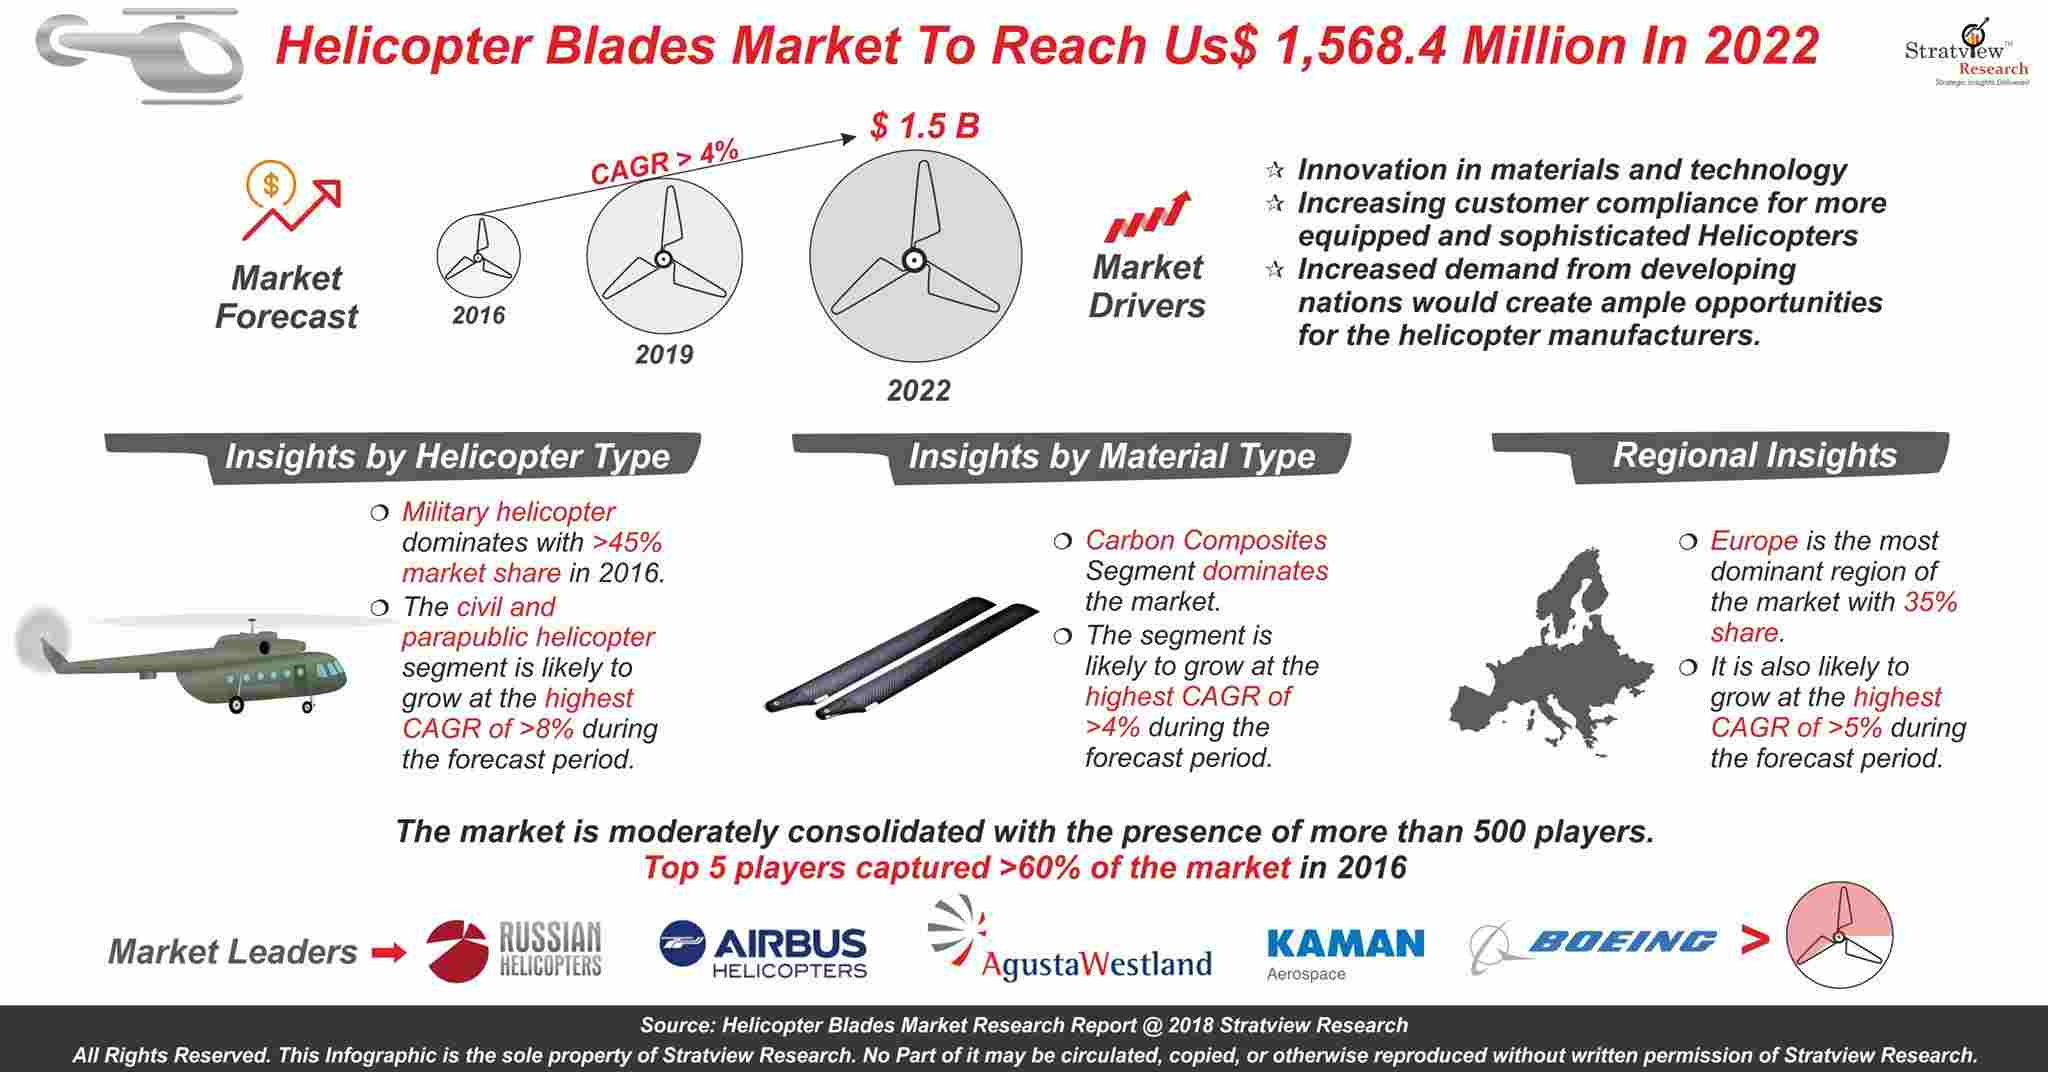 Helicopter Blades Market Analysis